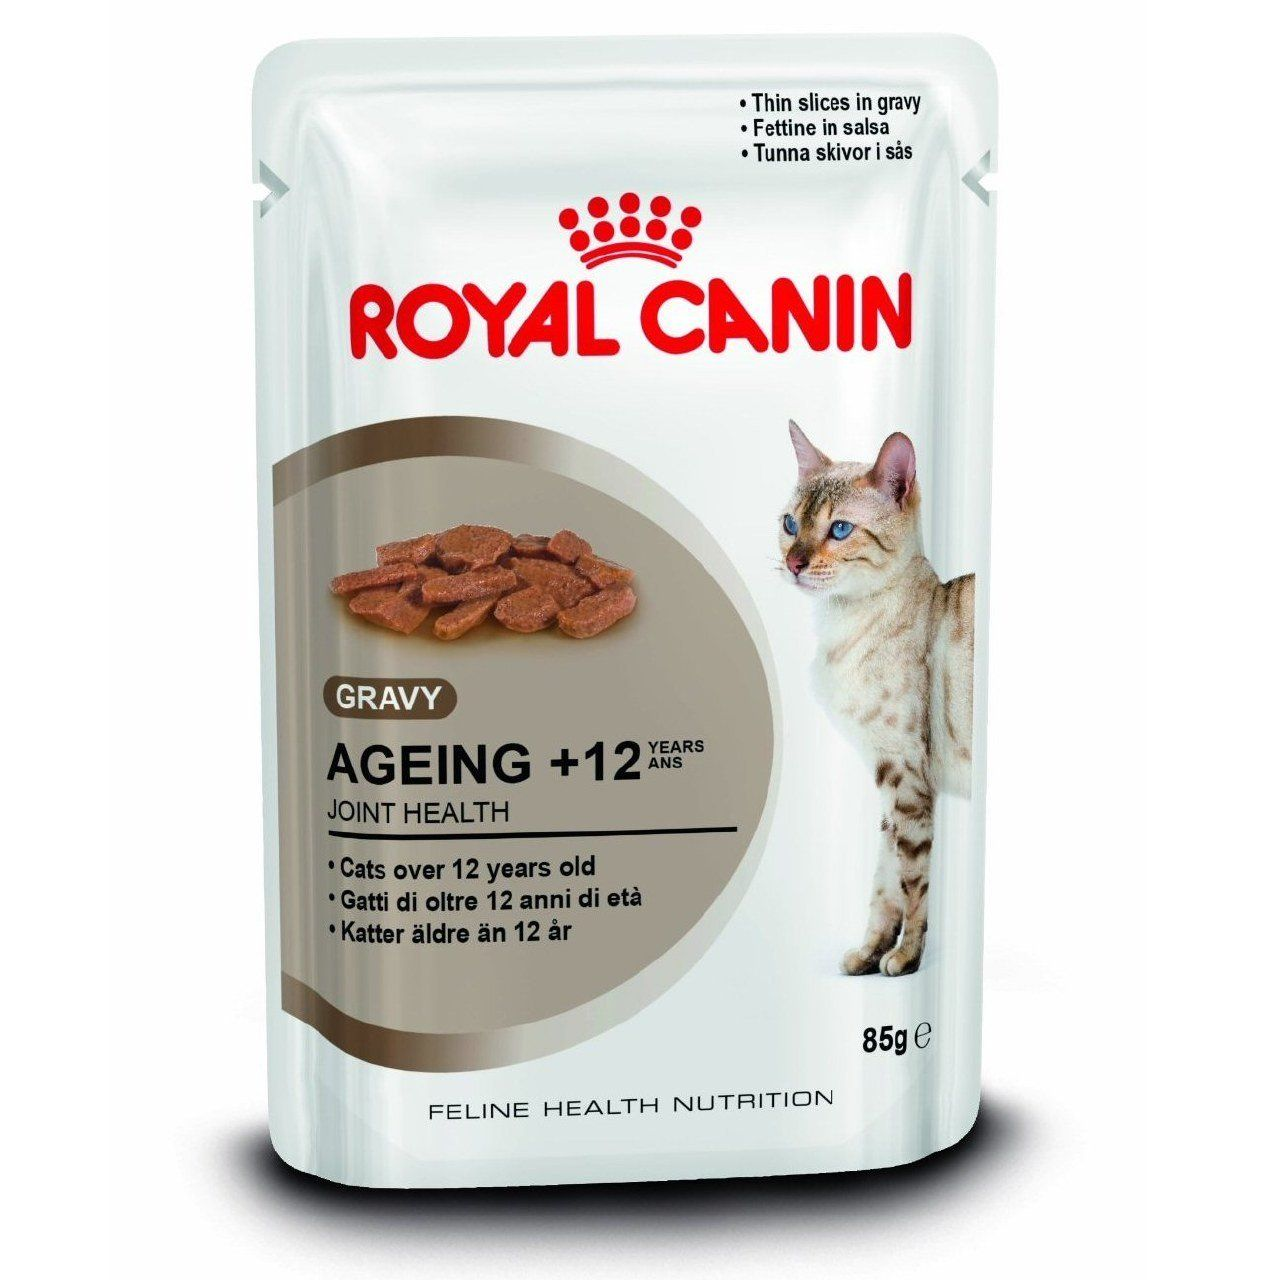 Royal Canin 12 X 85g Ageing 12 Cat Food In Gravy Undefined Cat Food Allergy Feline Health Cat Food Bowl